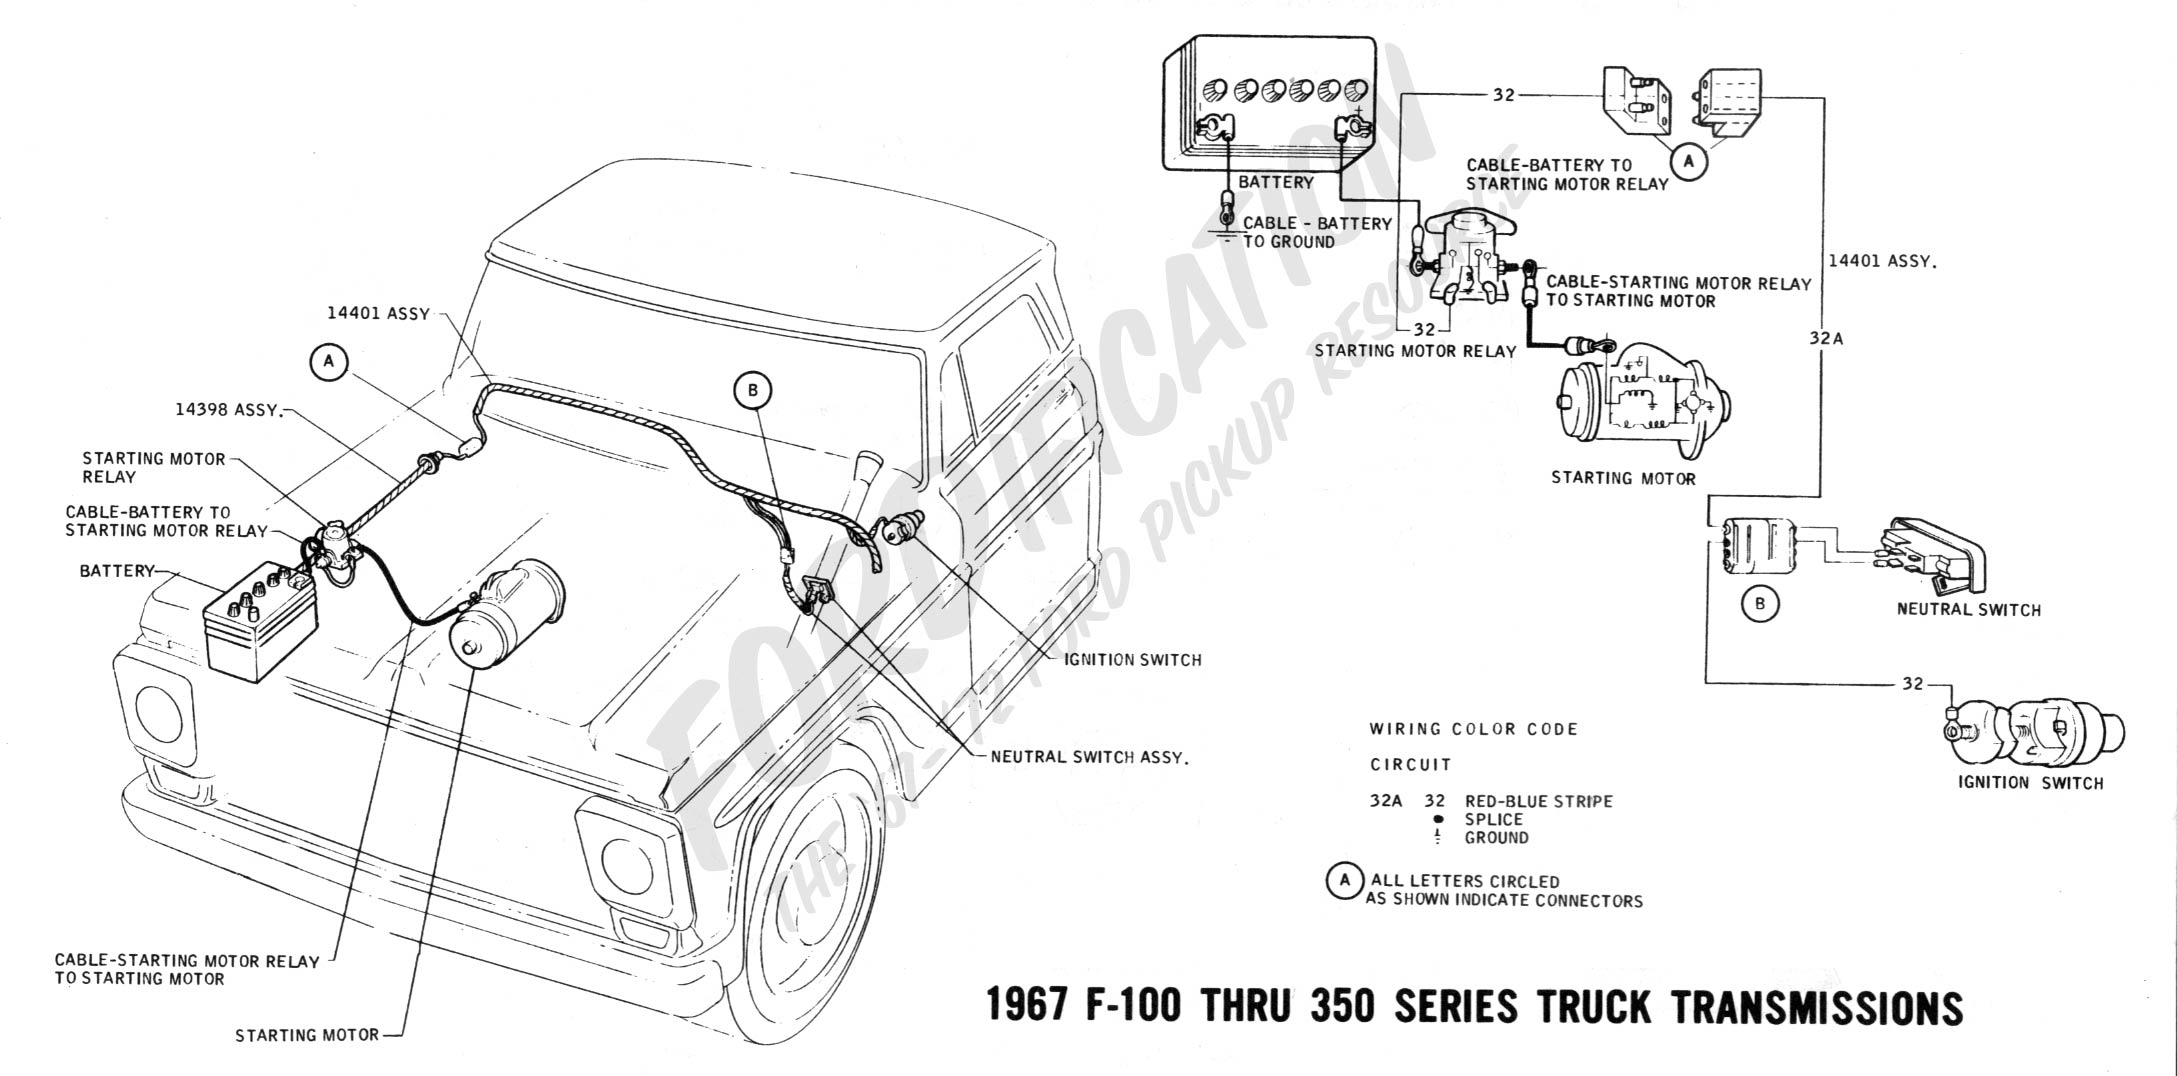 253621 Wiring Diagram Needed Hei Voltmeter Mercuiser 288 350 Sbc in addition 96 Ford F 250 460 Engine Diagram further 1978 Ford Starter Solenoid Wiring further Chevy Starter Solenoid Diagram further 1987 Ford 460 Smog Pump Diagram. on 78 ford bronco alternator wiring